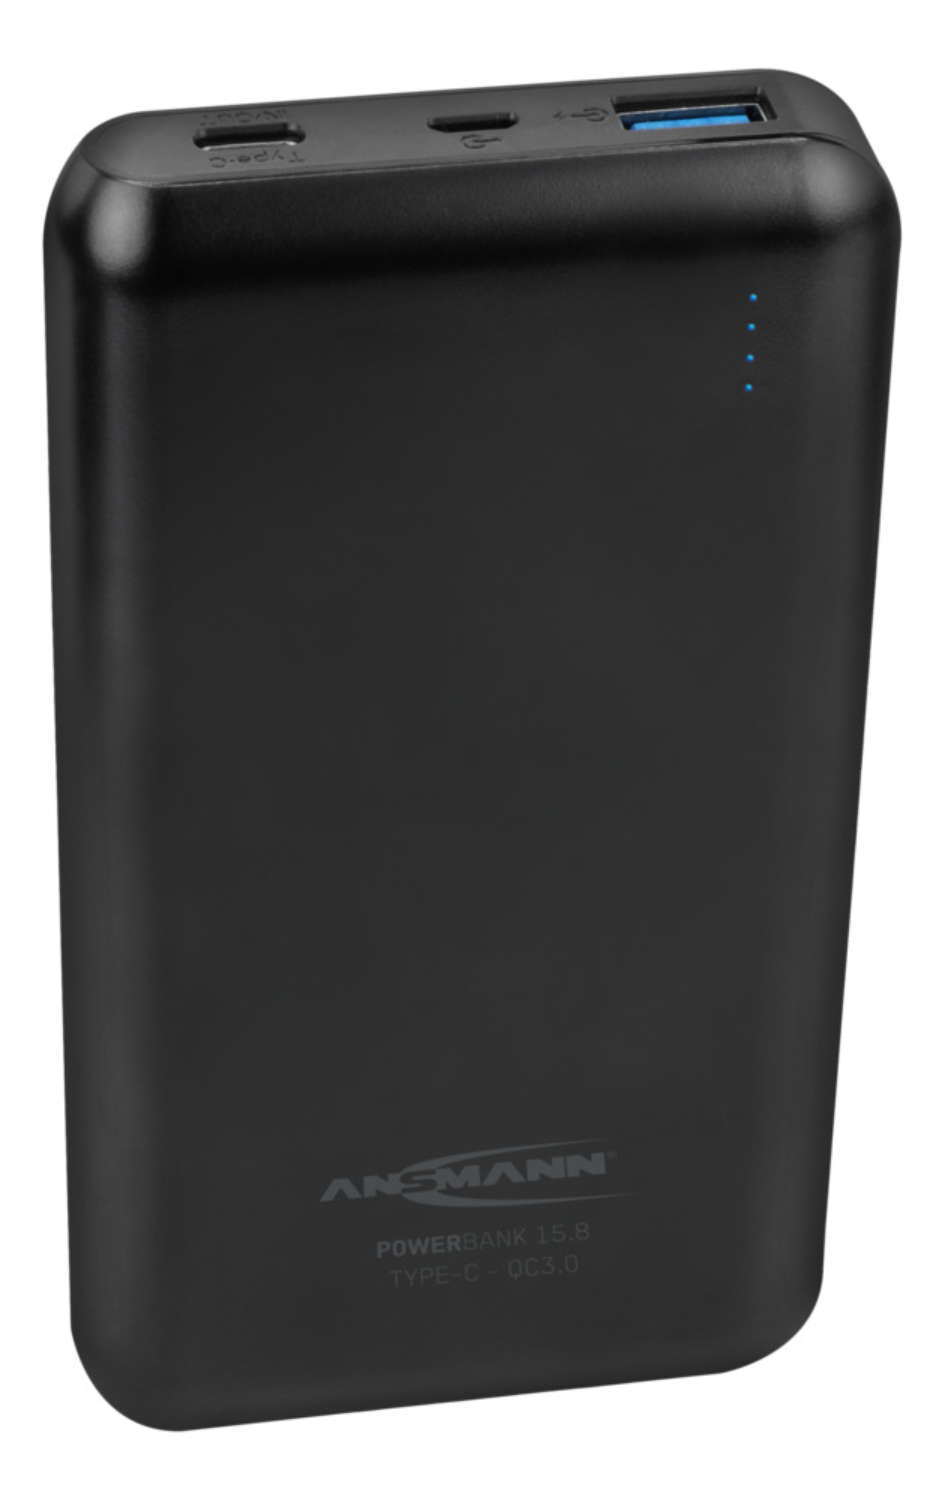 1700-0096_Powerbank_15.8_bu_02